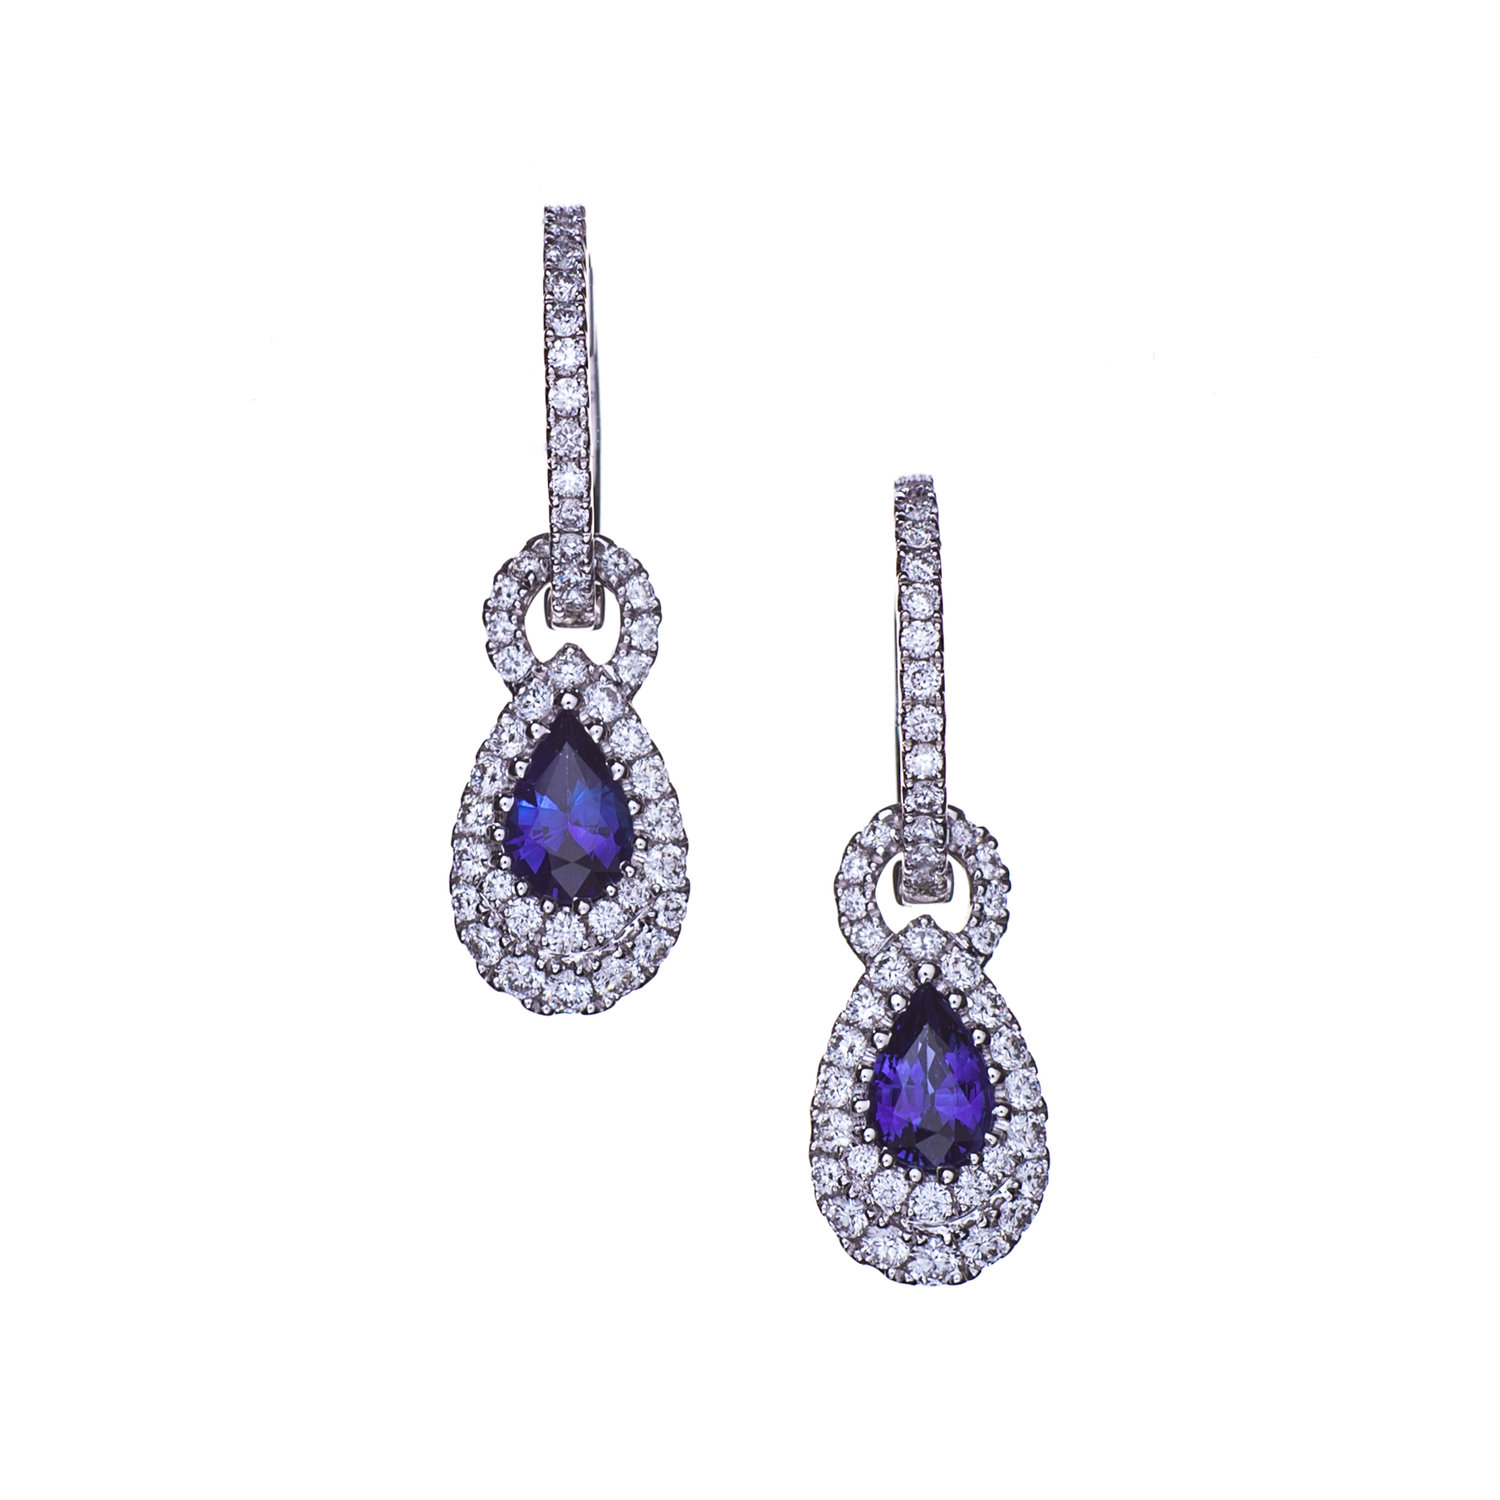 a pair diamond earrings classic of collections pear graff pearshape shape shaped